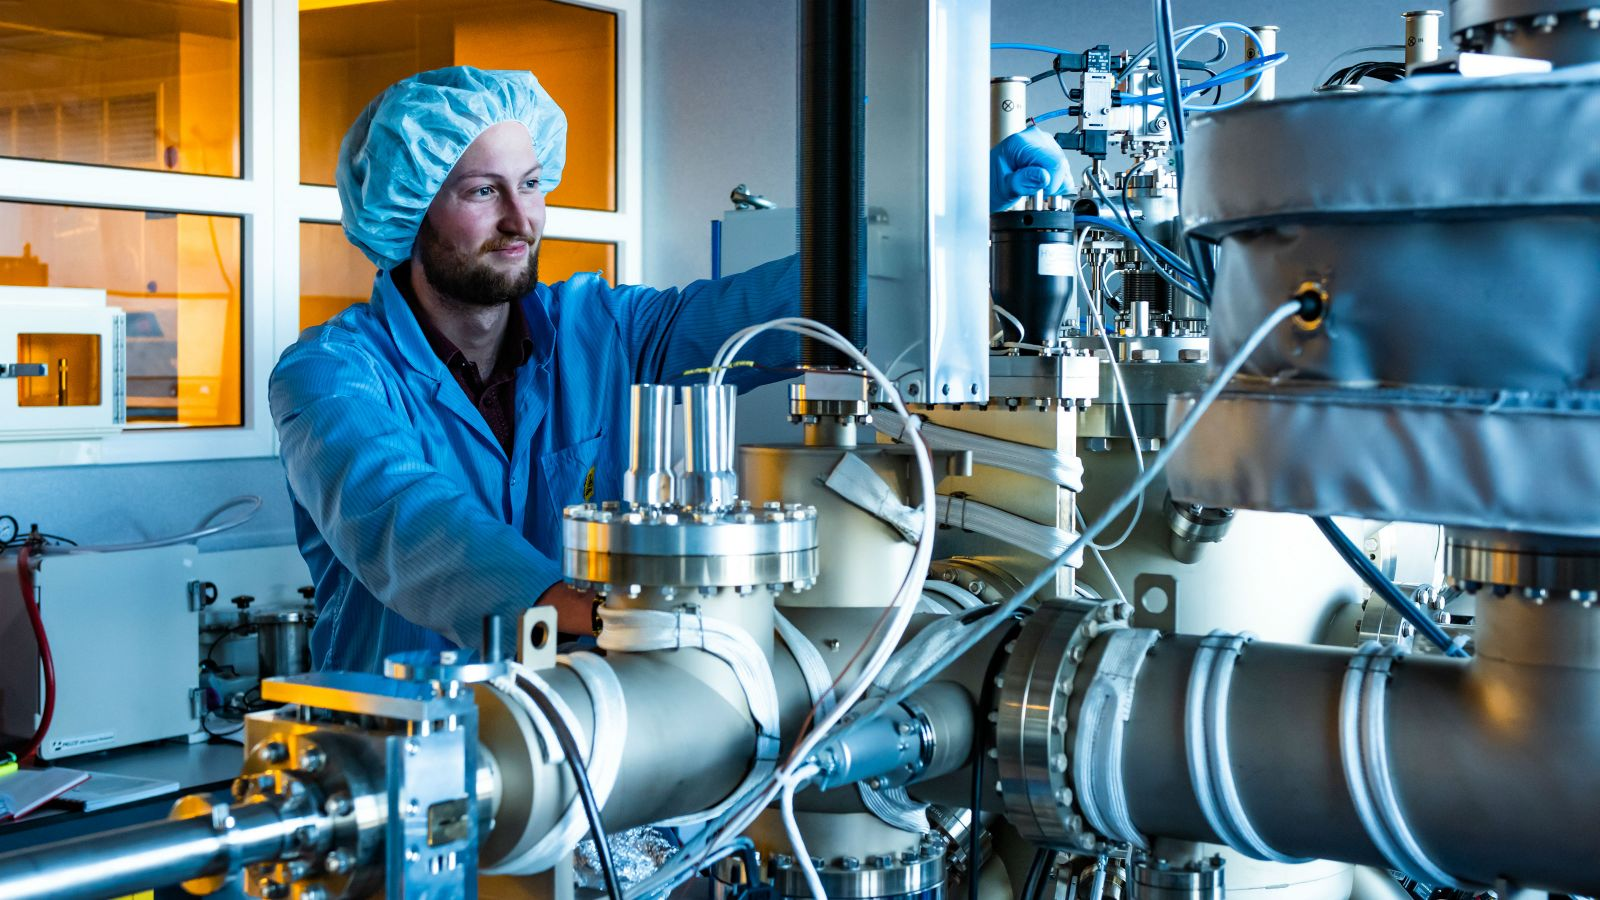 Tane, wearing a blue lab coat and a hair covering, looks at physics equipment in a small lab.